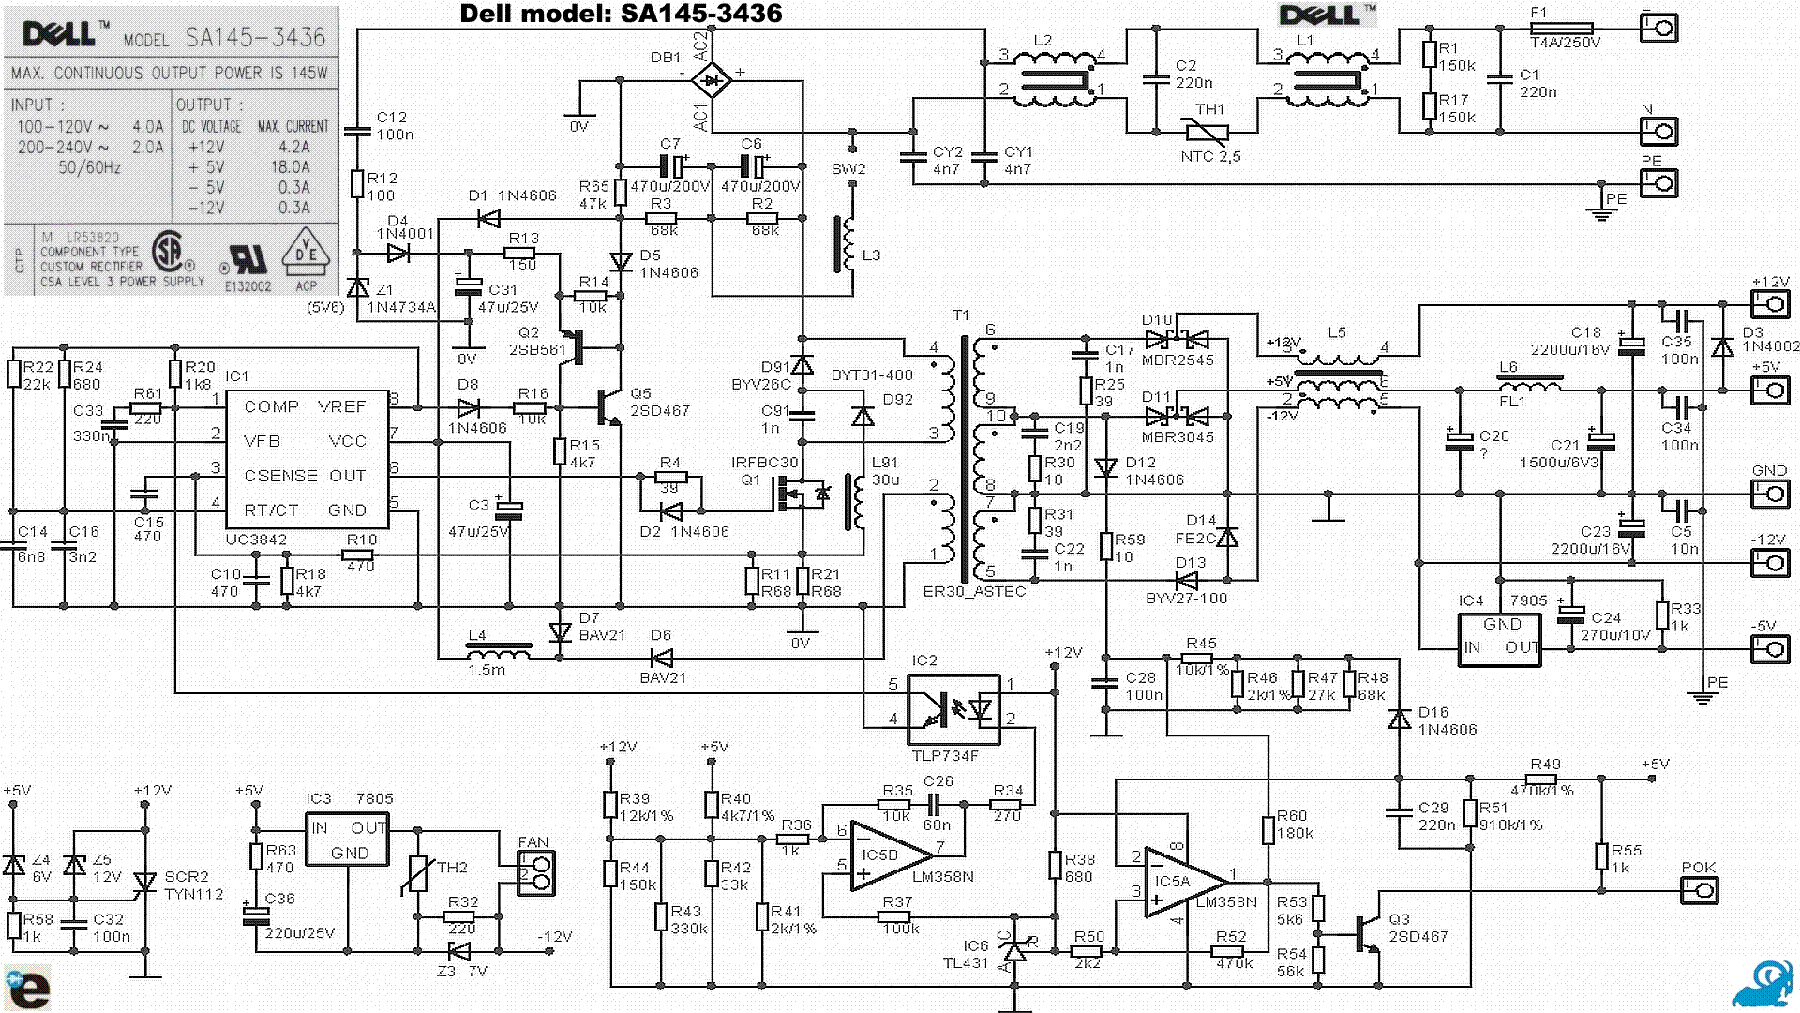 dell sa145 3436 power supply schematic service manual download rh elektrotanya com